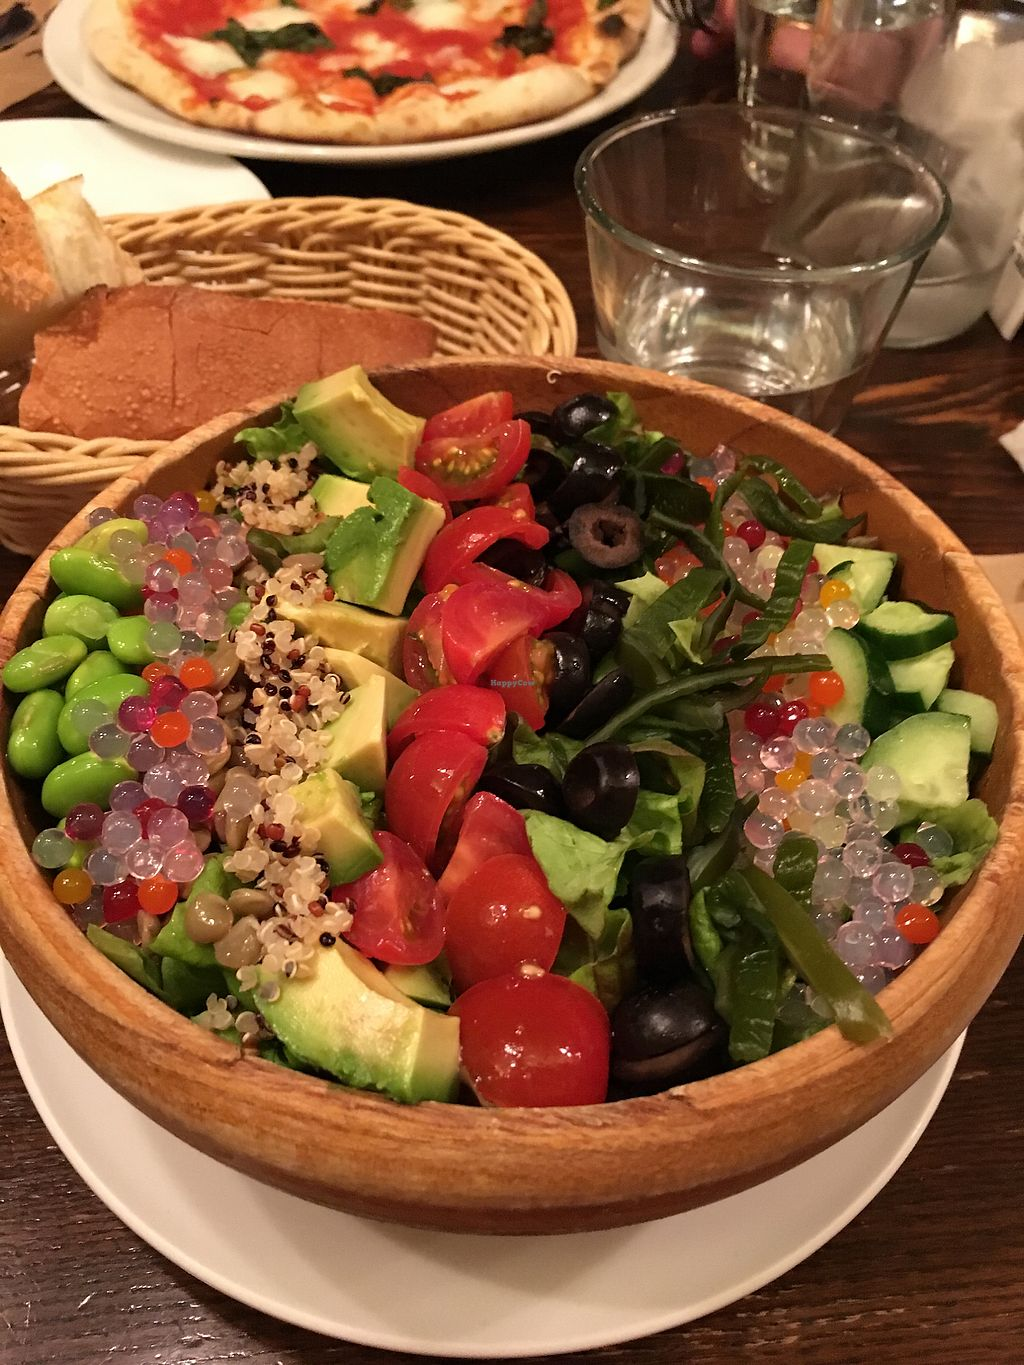 """Photo of Cafe La Boheme - G-Zone  by <a href=""""/members/profile/Siup"""">Siup</a> <br/>Vegan salad  <br/> March 28, 2018  - <a href='/contact/abuse/image/93479/377210'>Report</a>"""